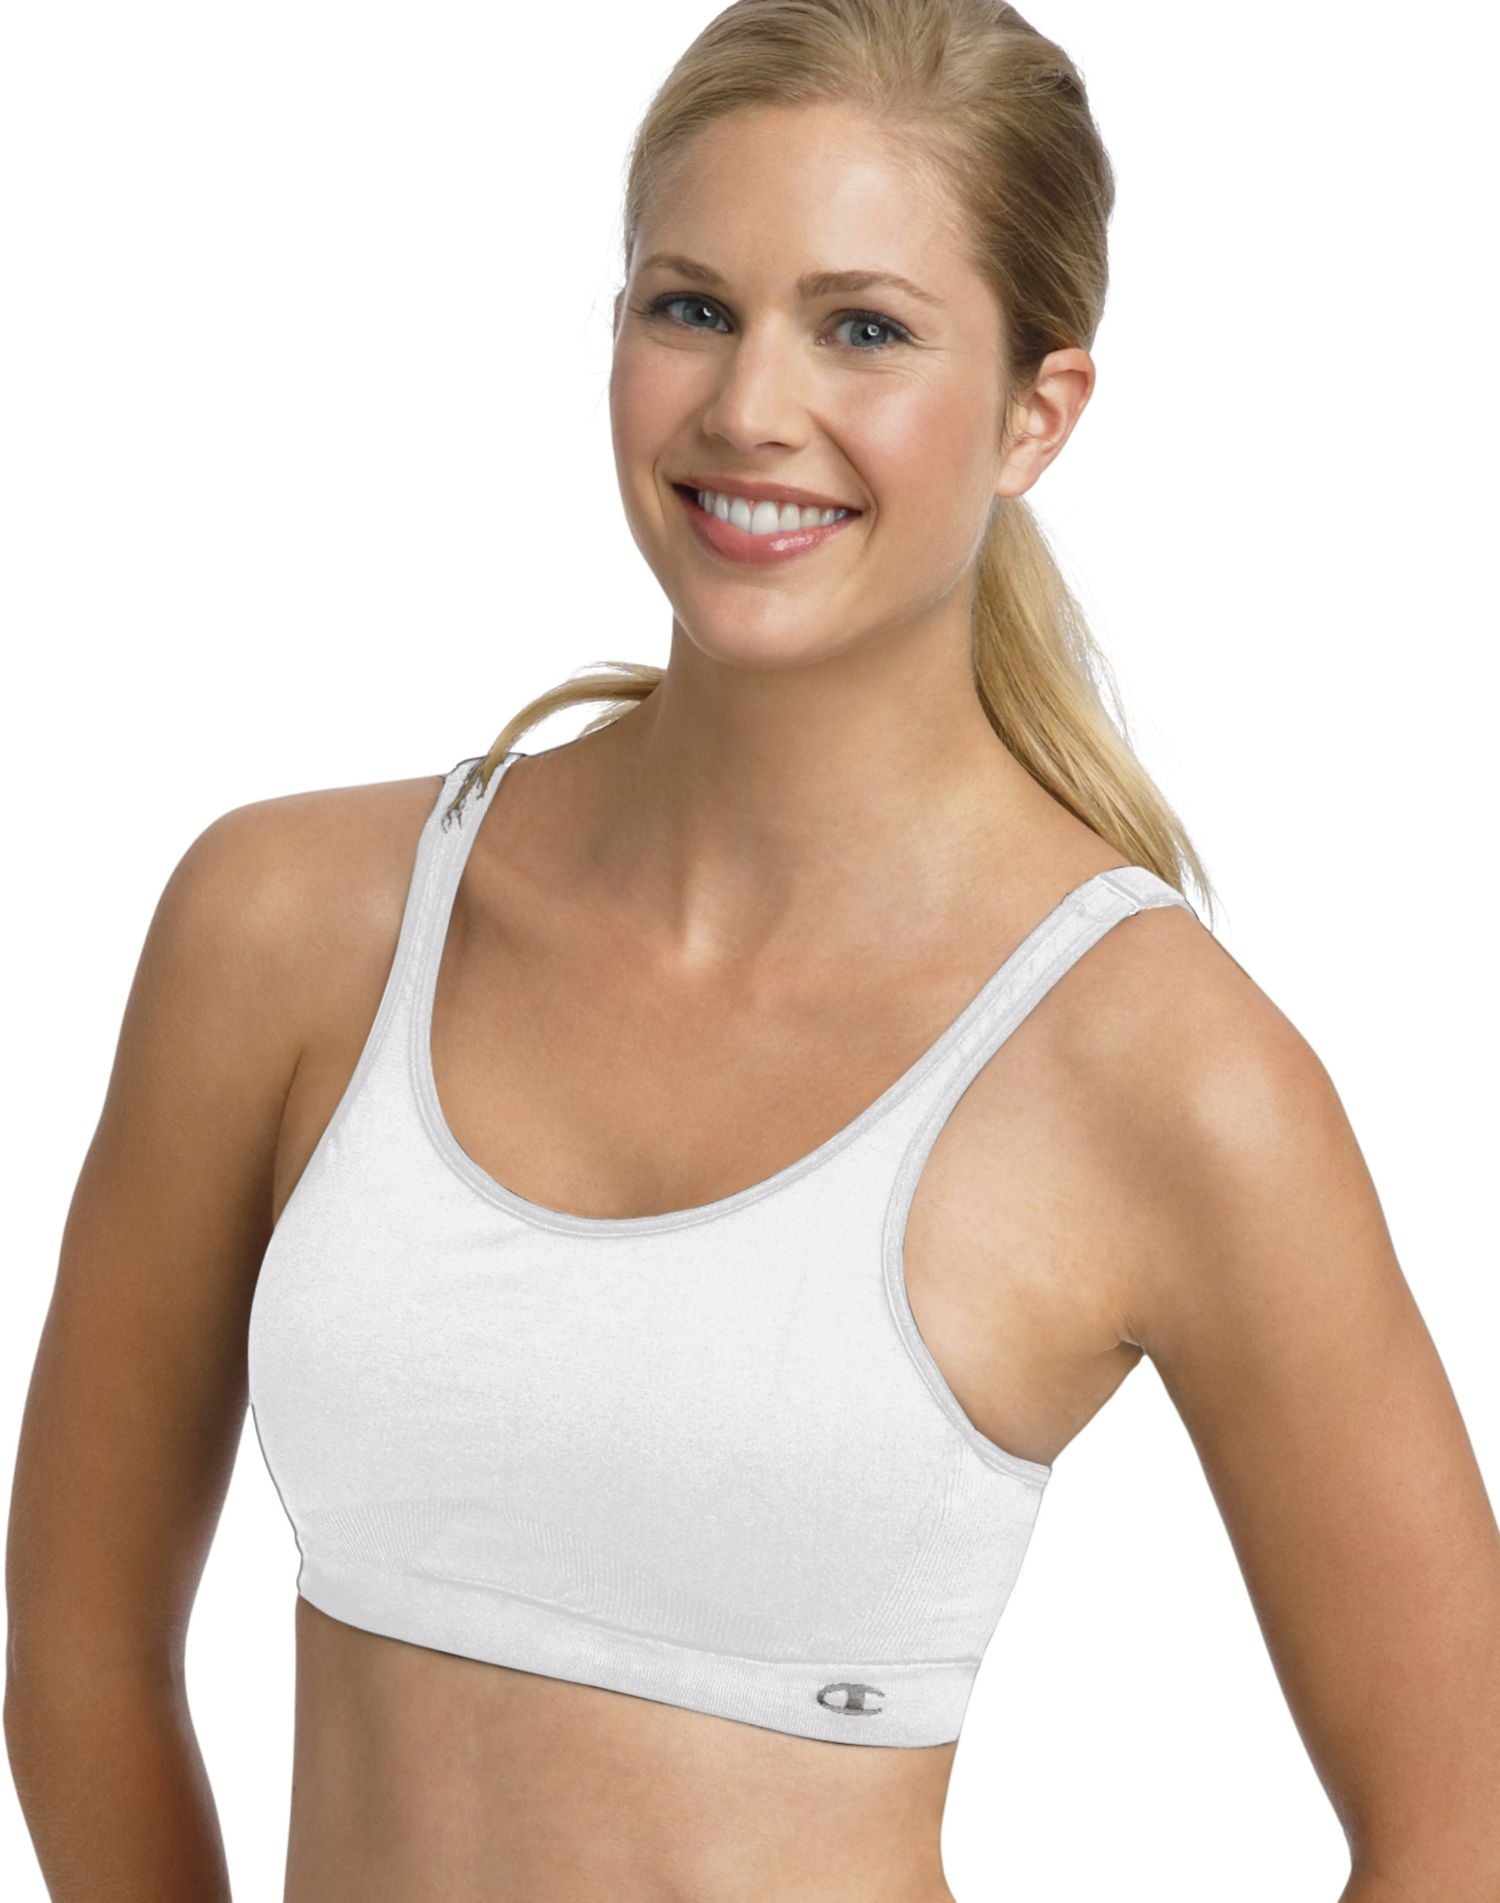 107355ad077 6242 - Champion Double Dry Seamless Full Support Underwire Sports ...